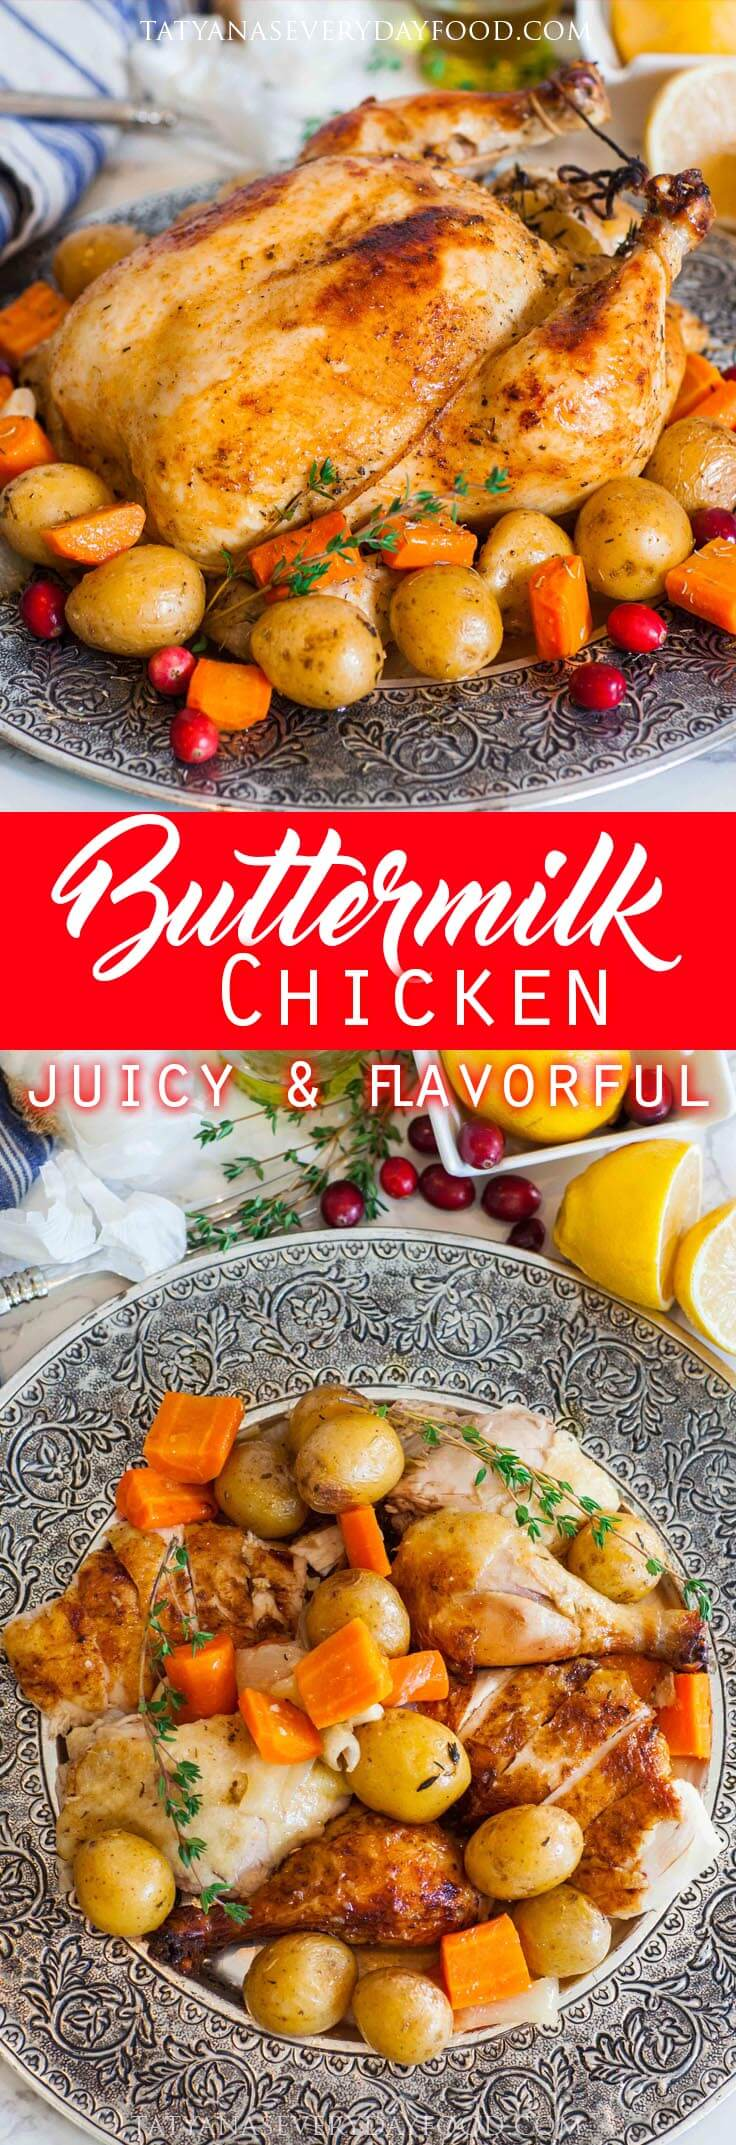 Oven Roasted Garlic Buttermilk Chicken with potatoes